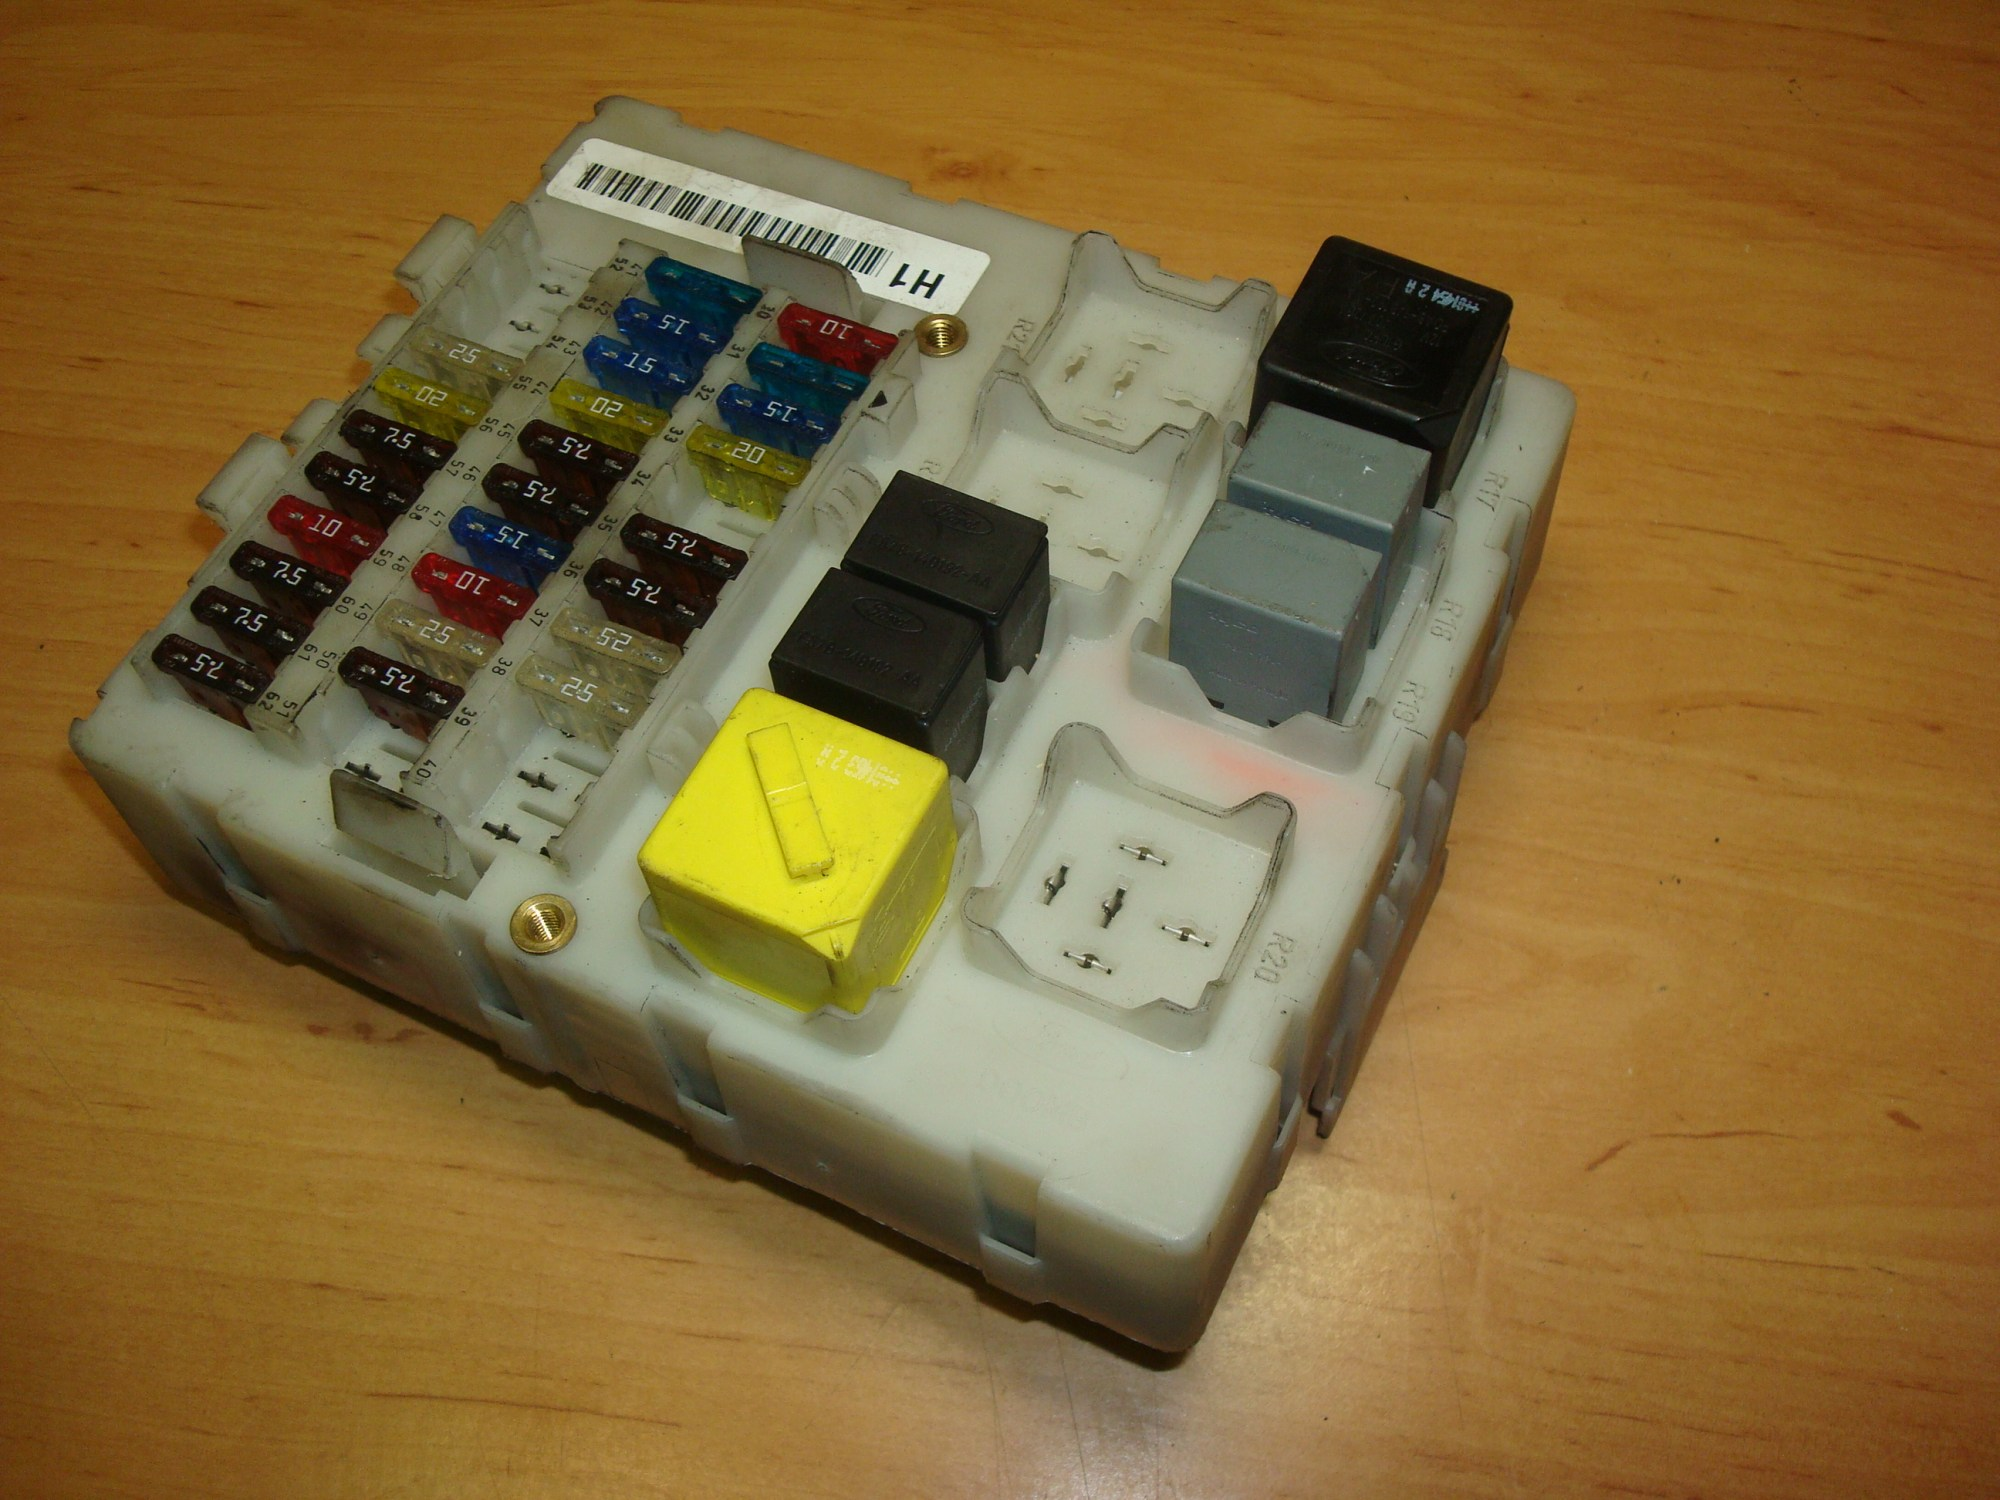 hight resolution of ford focus 1 8tdci 01 05 fuse box 518273206 article 518273206 2m5t14a073bc